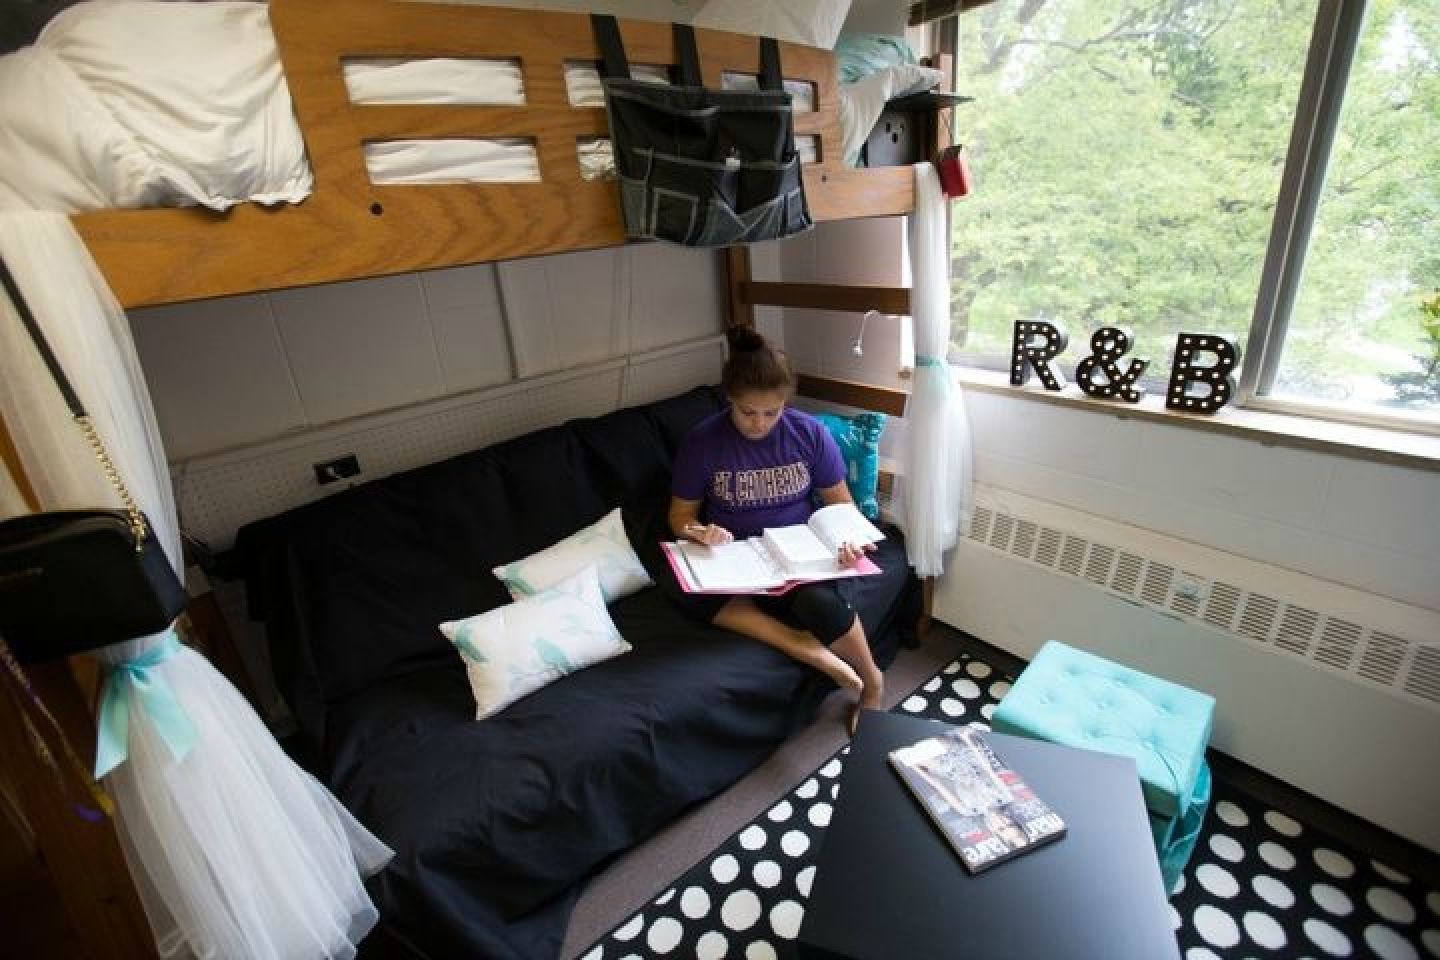 student on bunk bed in St. Mary Hall dorm room